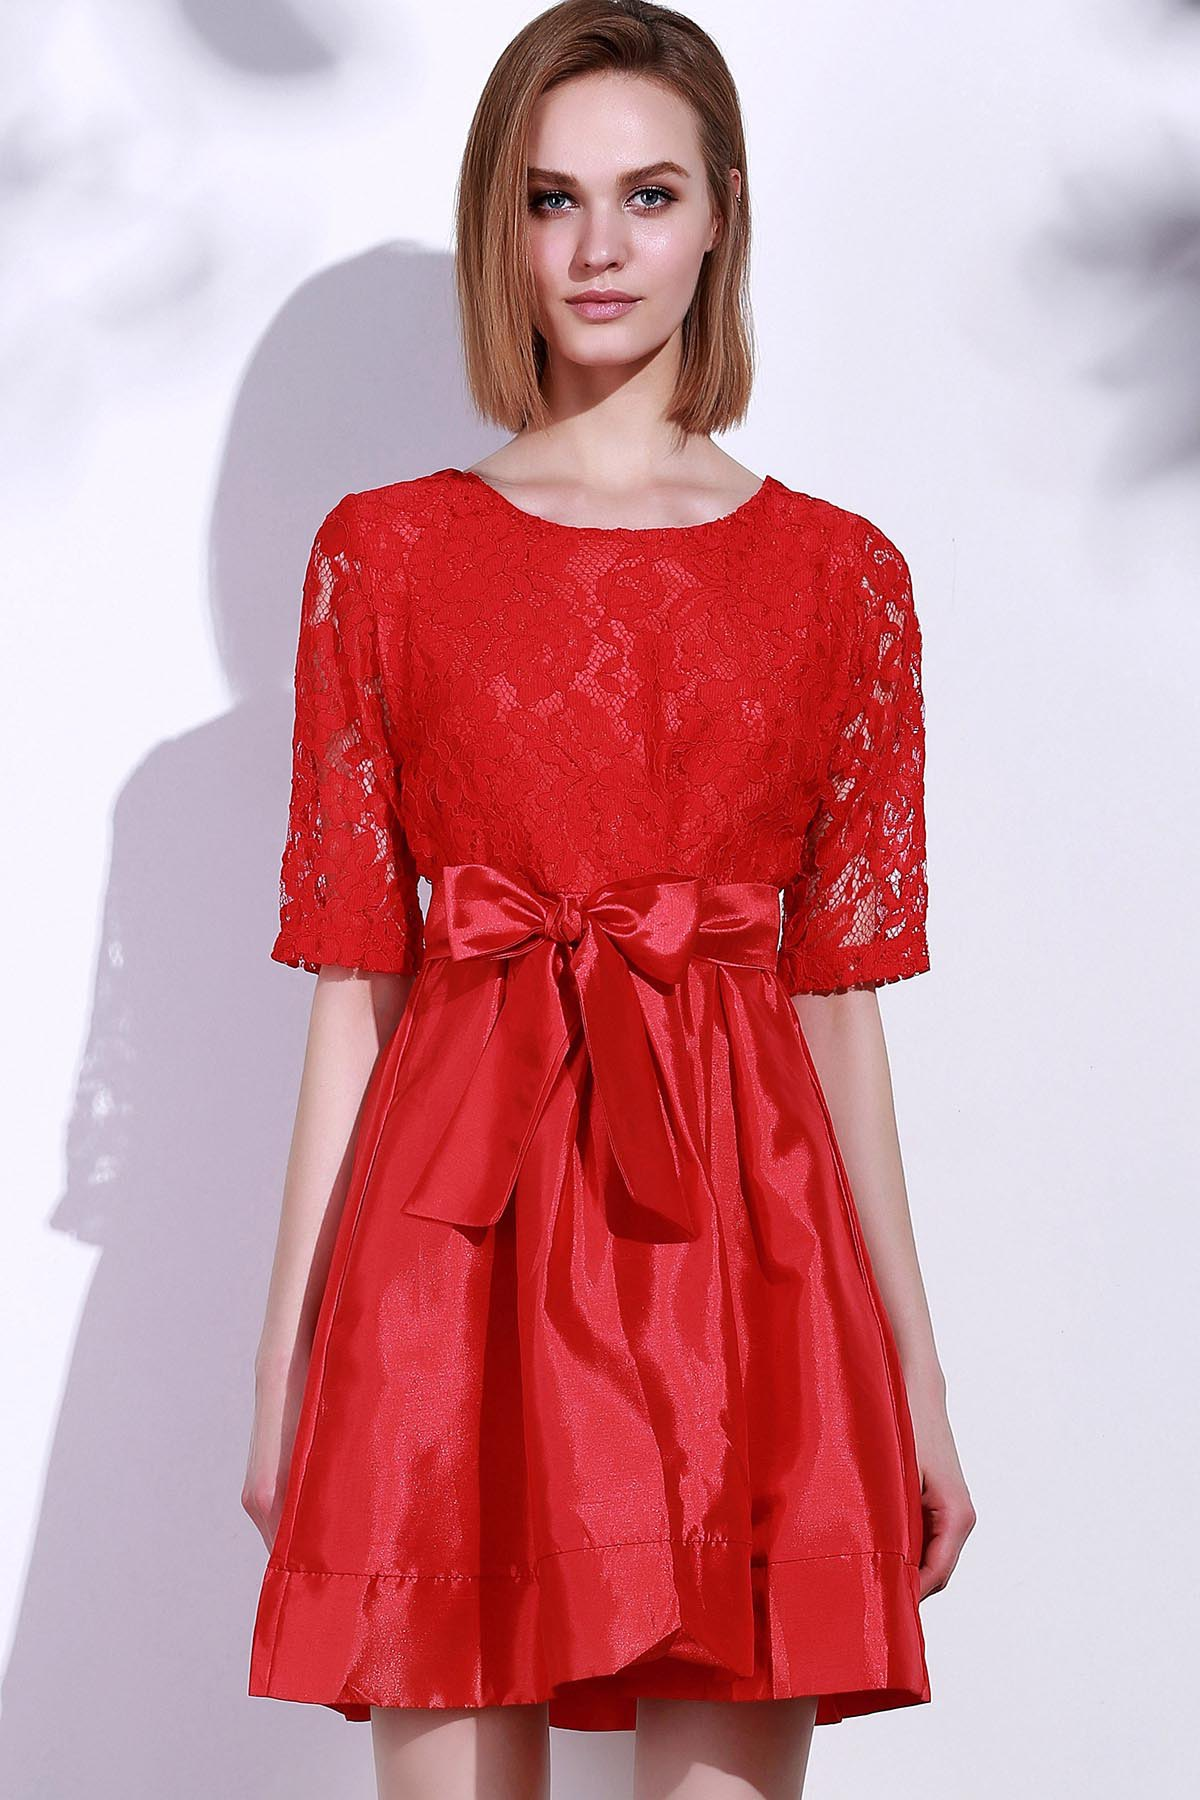 79c4e1720b Affordable Elegant Round Neck Half Sleeve Hollow Out Bowknot Embellished Women's  Dress